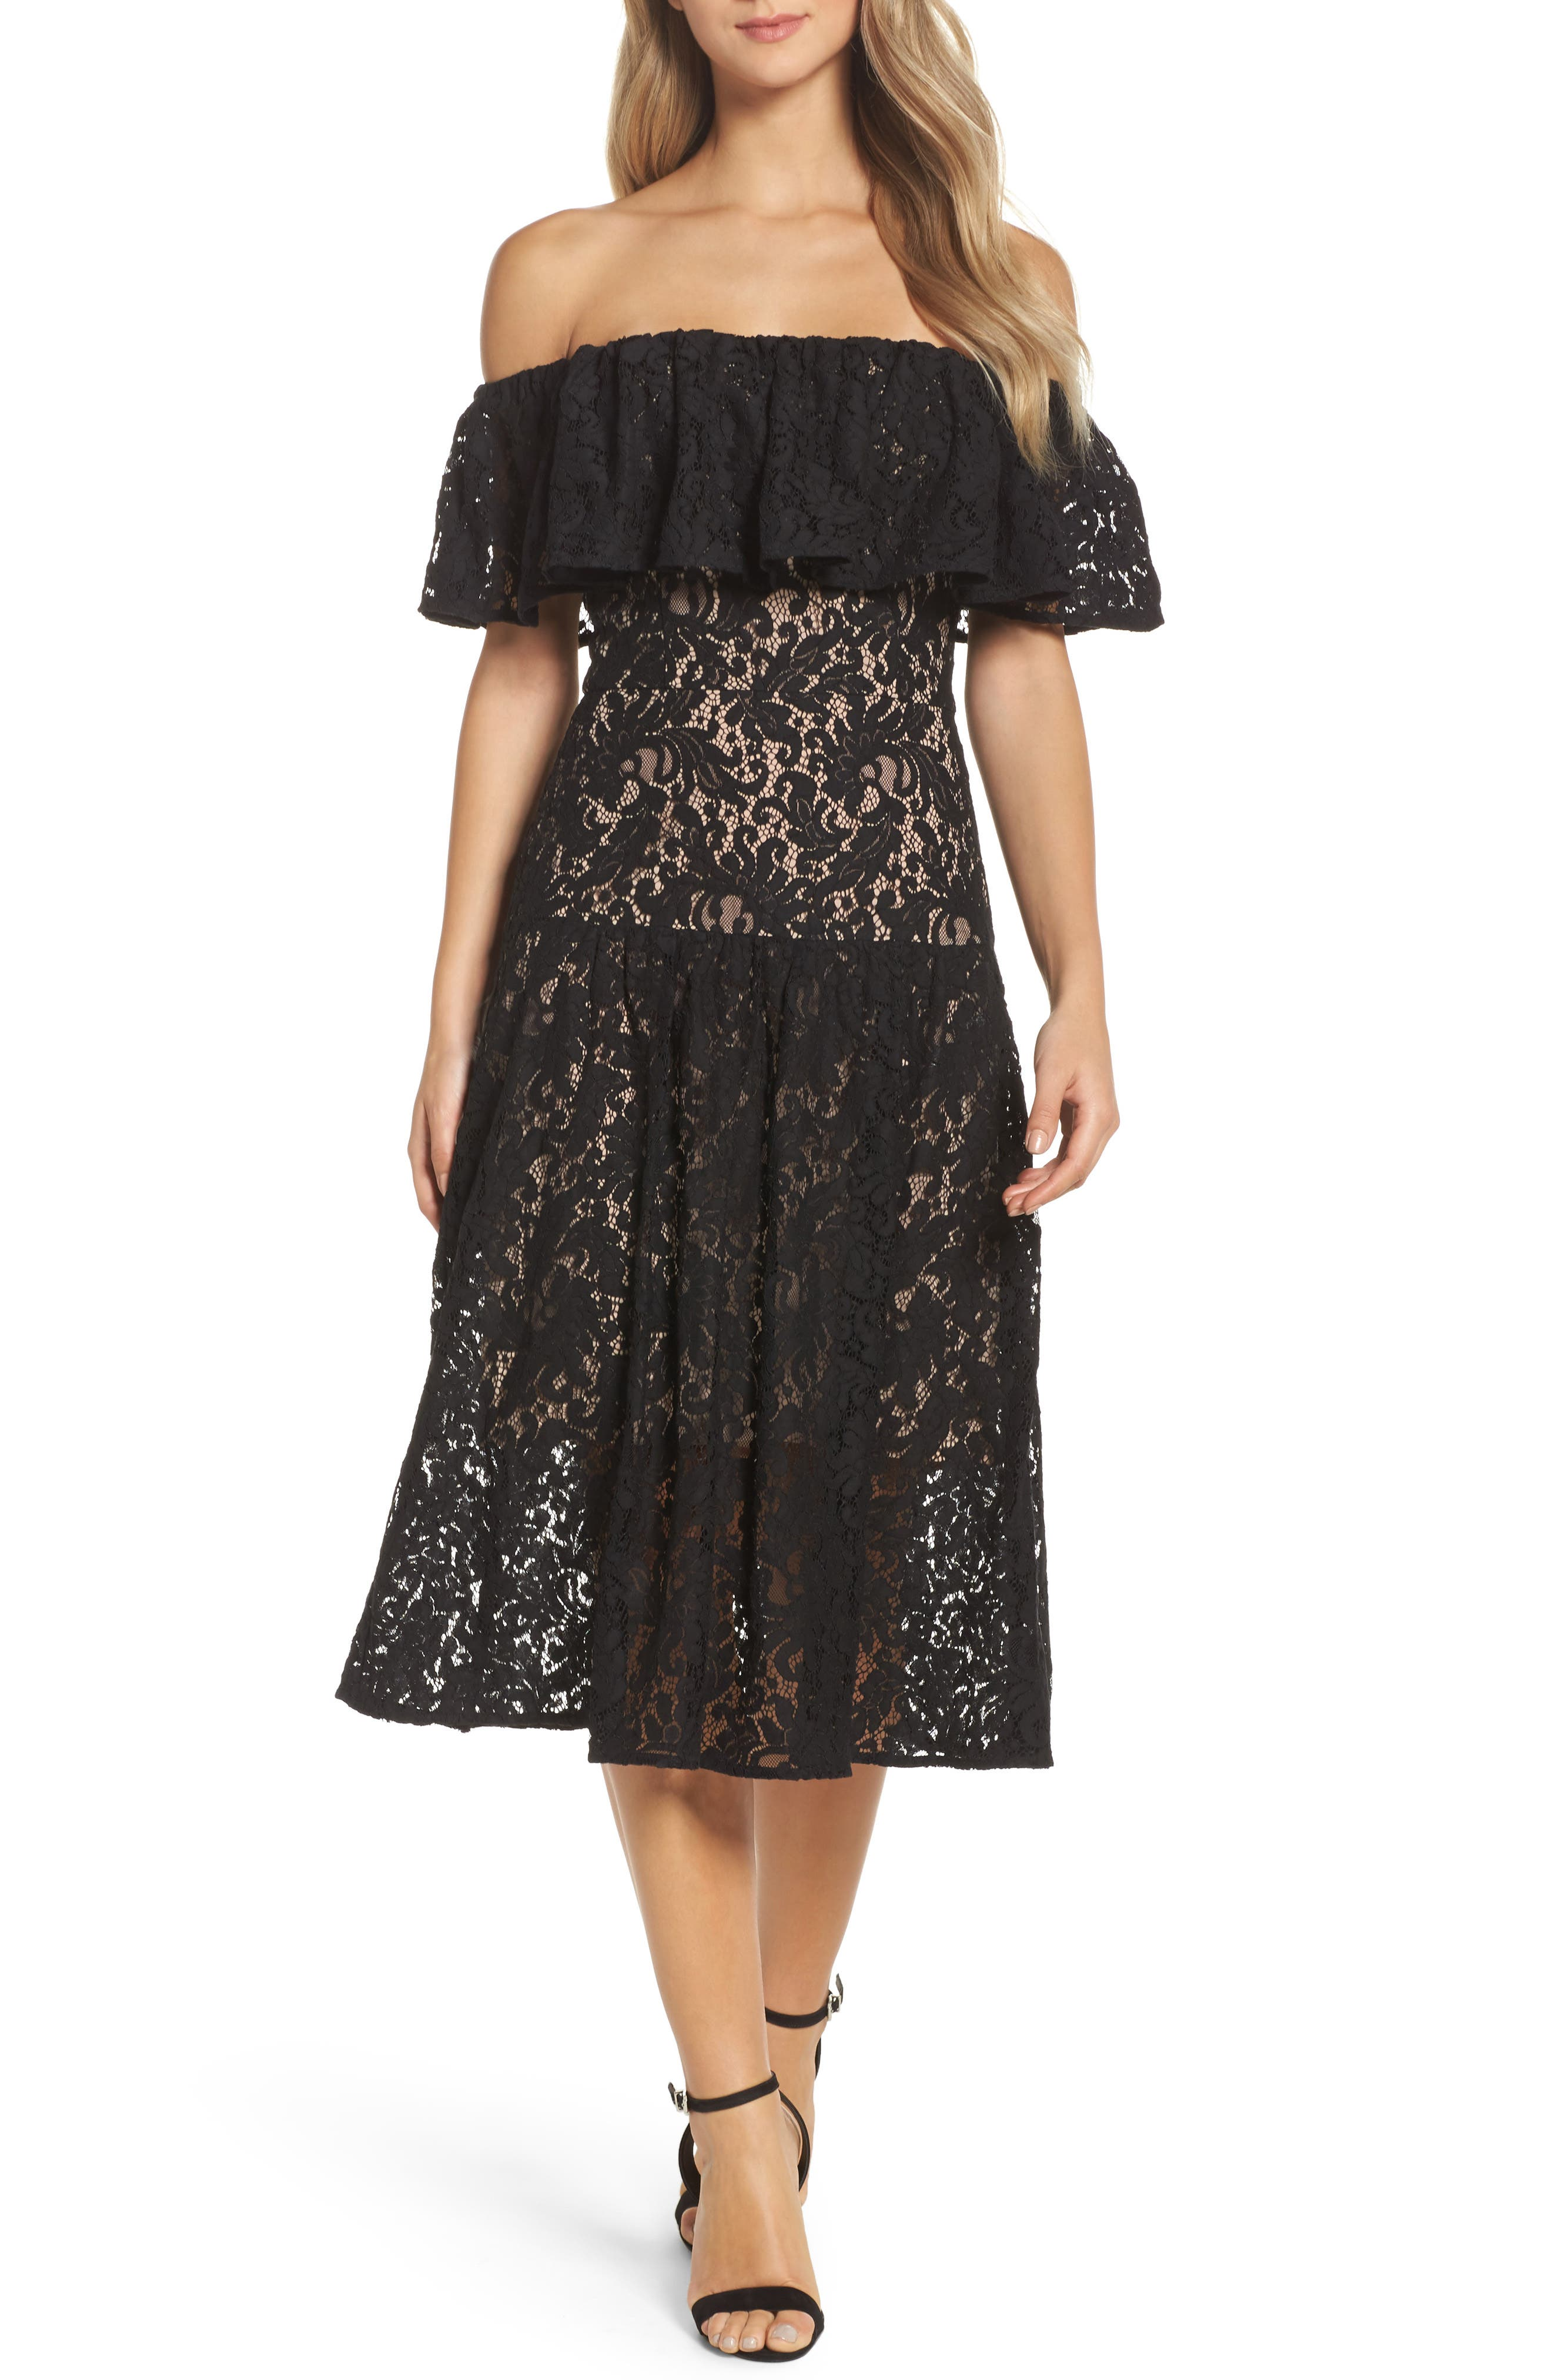 Sunday Silence Lace Off the Shoulder Dress,                             Main thumbnail 1, color,                             001